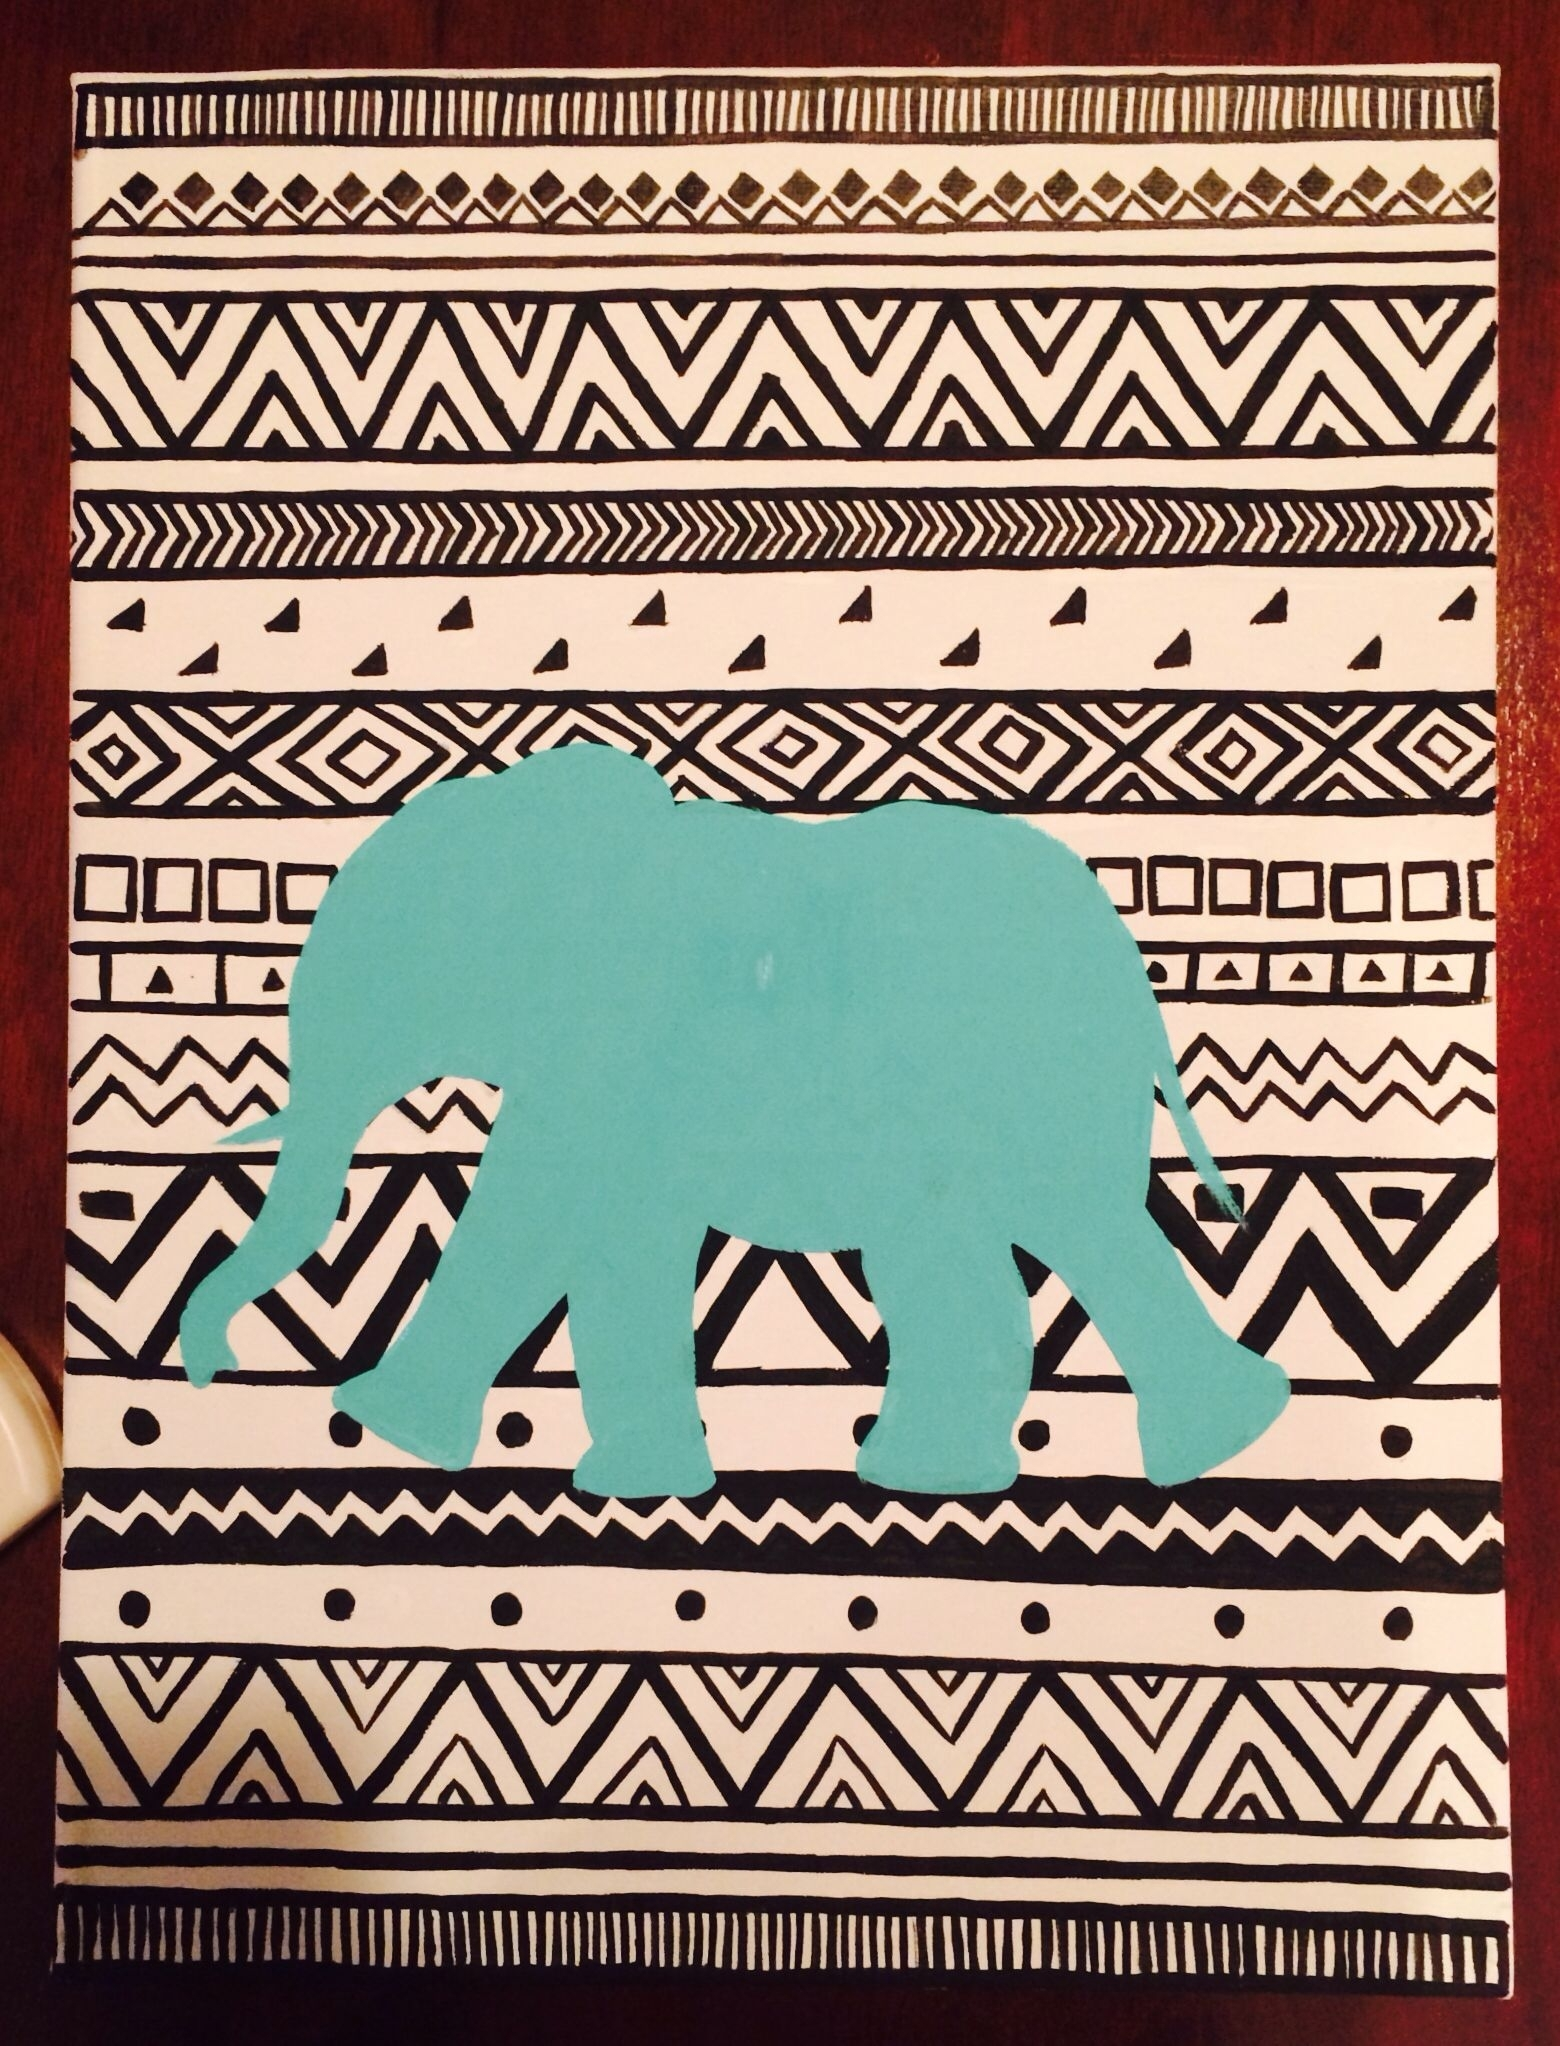 Diy College Dorm Decor, Tribal Elephant Canvas Art | Room Regarding Most Recent Aztec Fabric Wall Art (View 10 of 15)